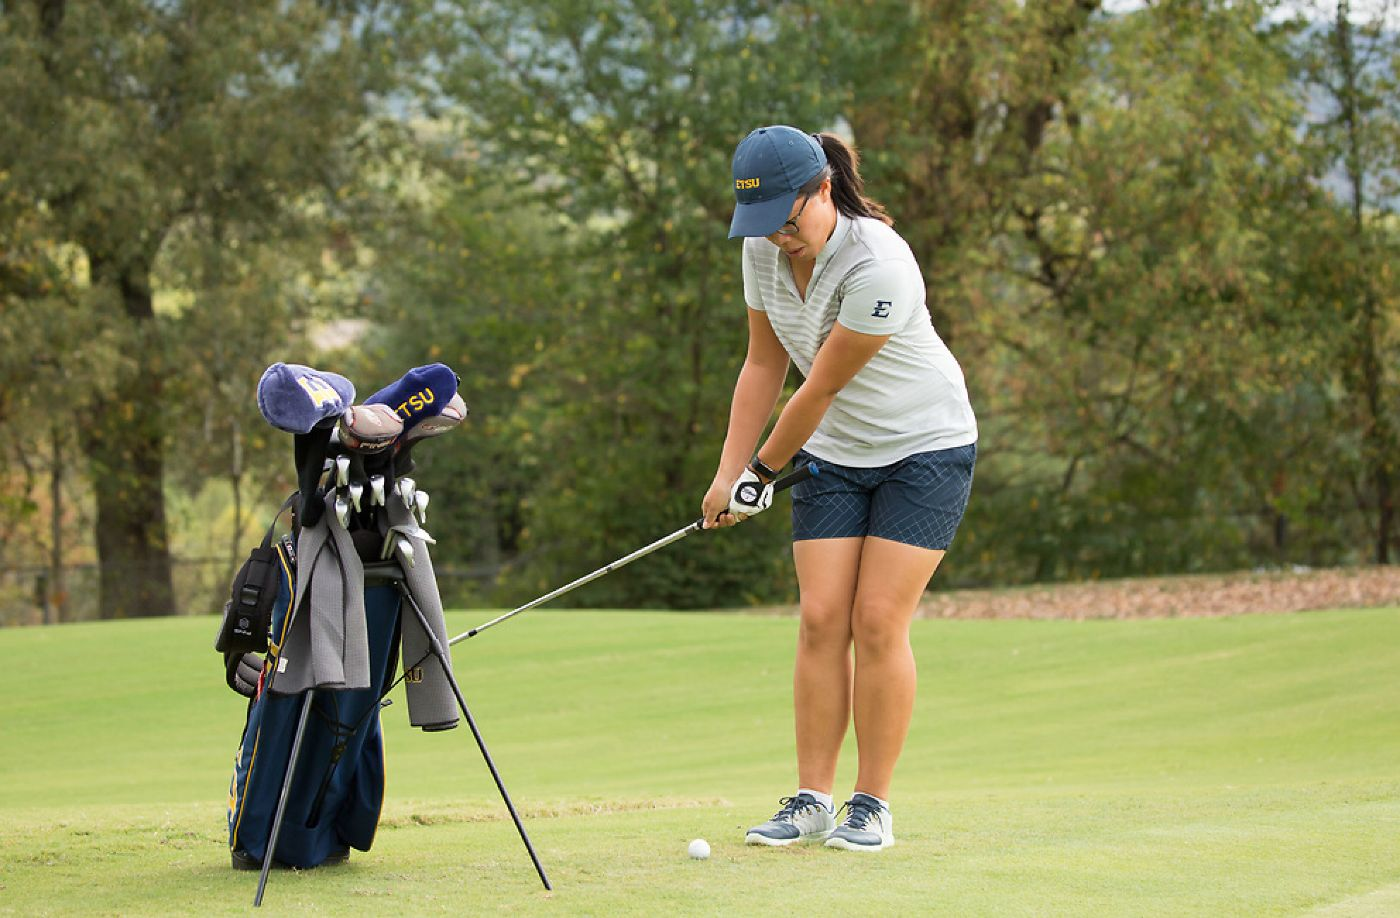 Loy Climbs Leaderboard For Fourth-Place Finish